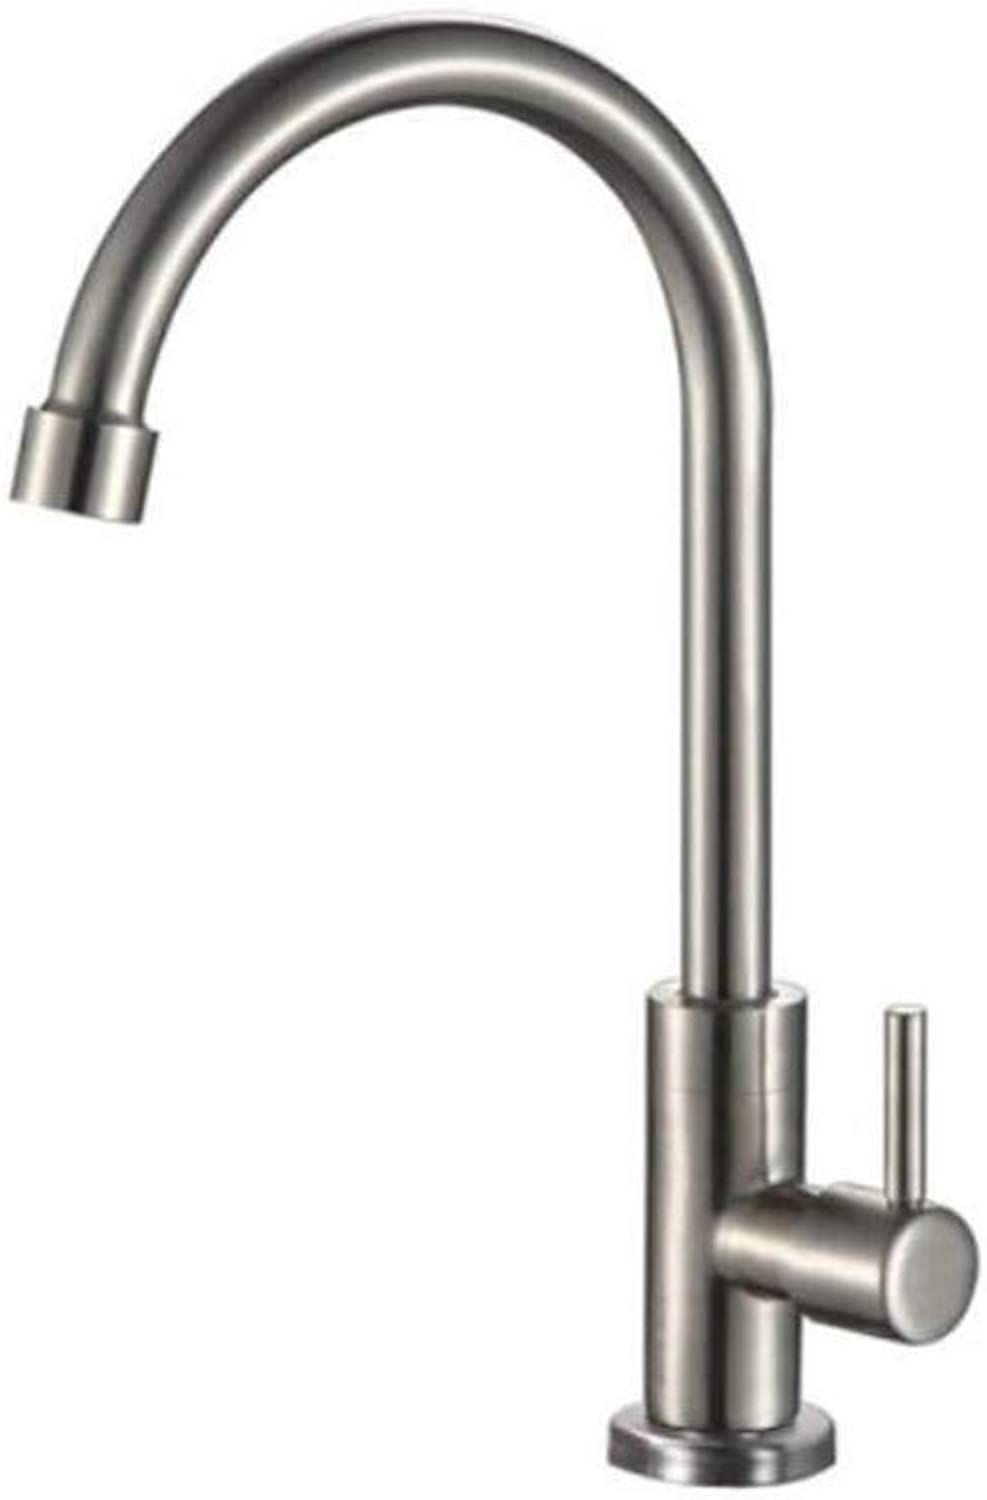 Taps Kitchen Sinktaps Mixer Swivel Faucet Sink Stainless Steel greenical Single-Cold